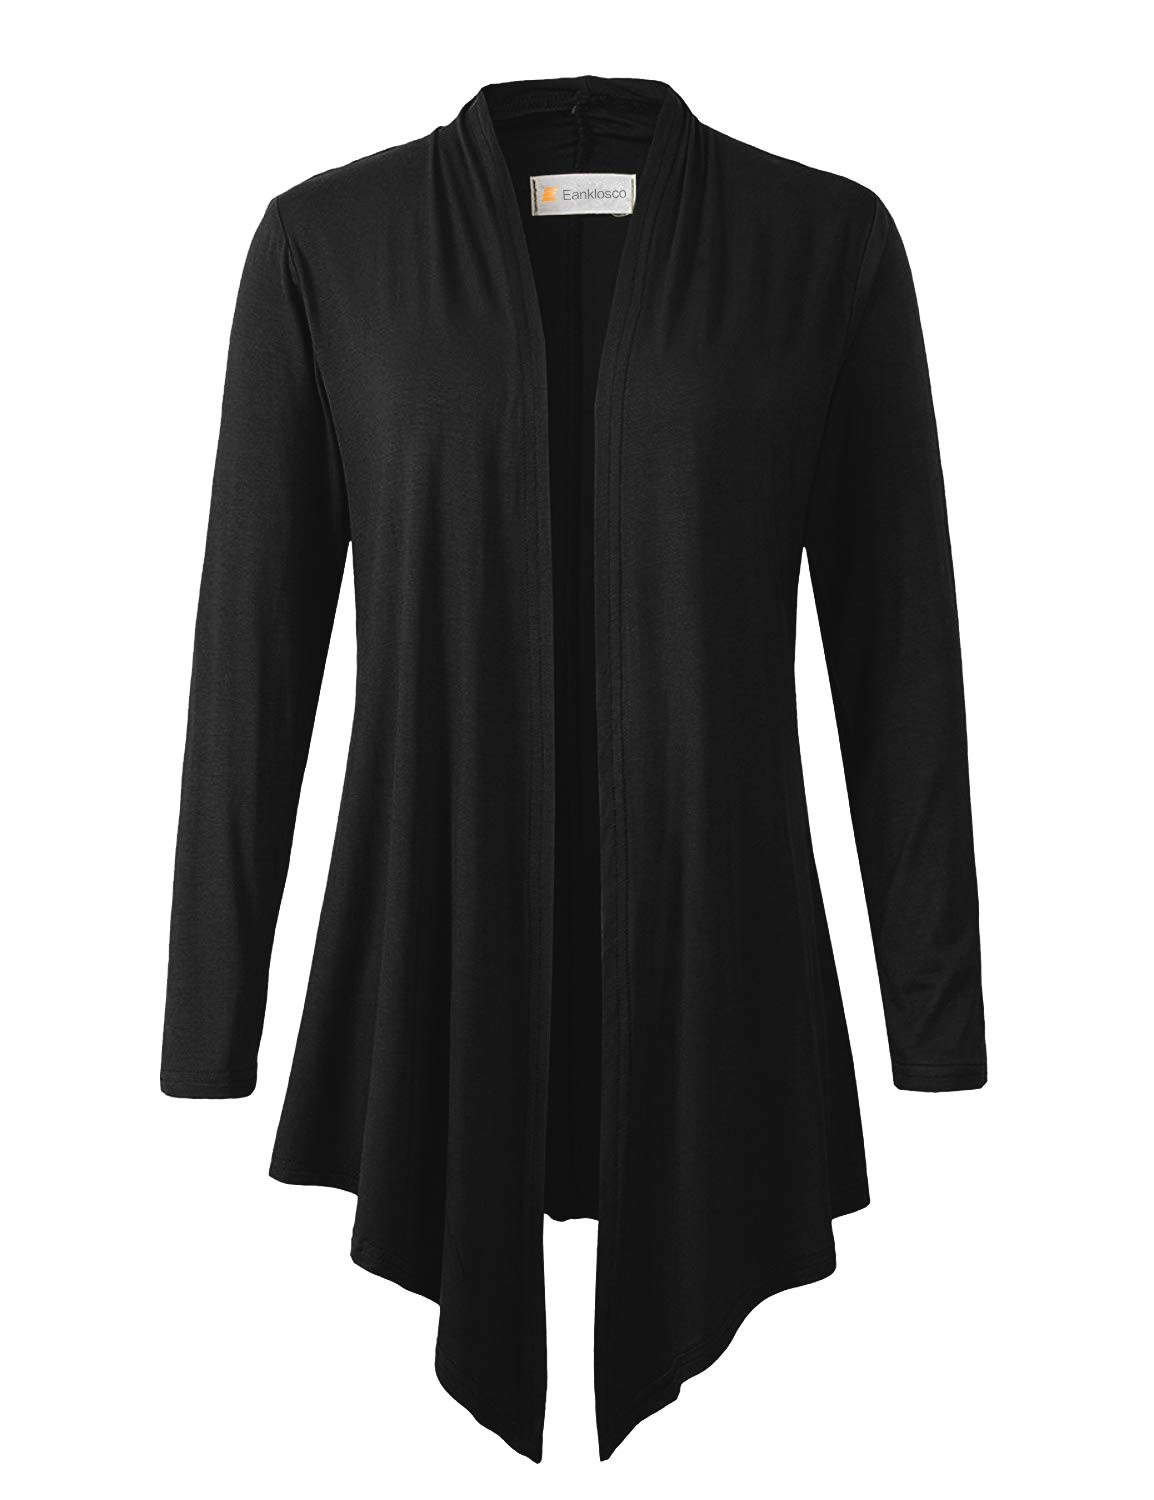 Eanklosco Women's Long Sleeve Drape Open-Front Cardigan Light Weight Irregular Hem Casual Tops (S, Black)